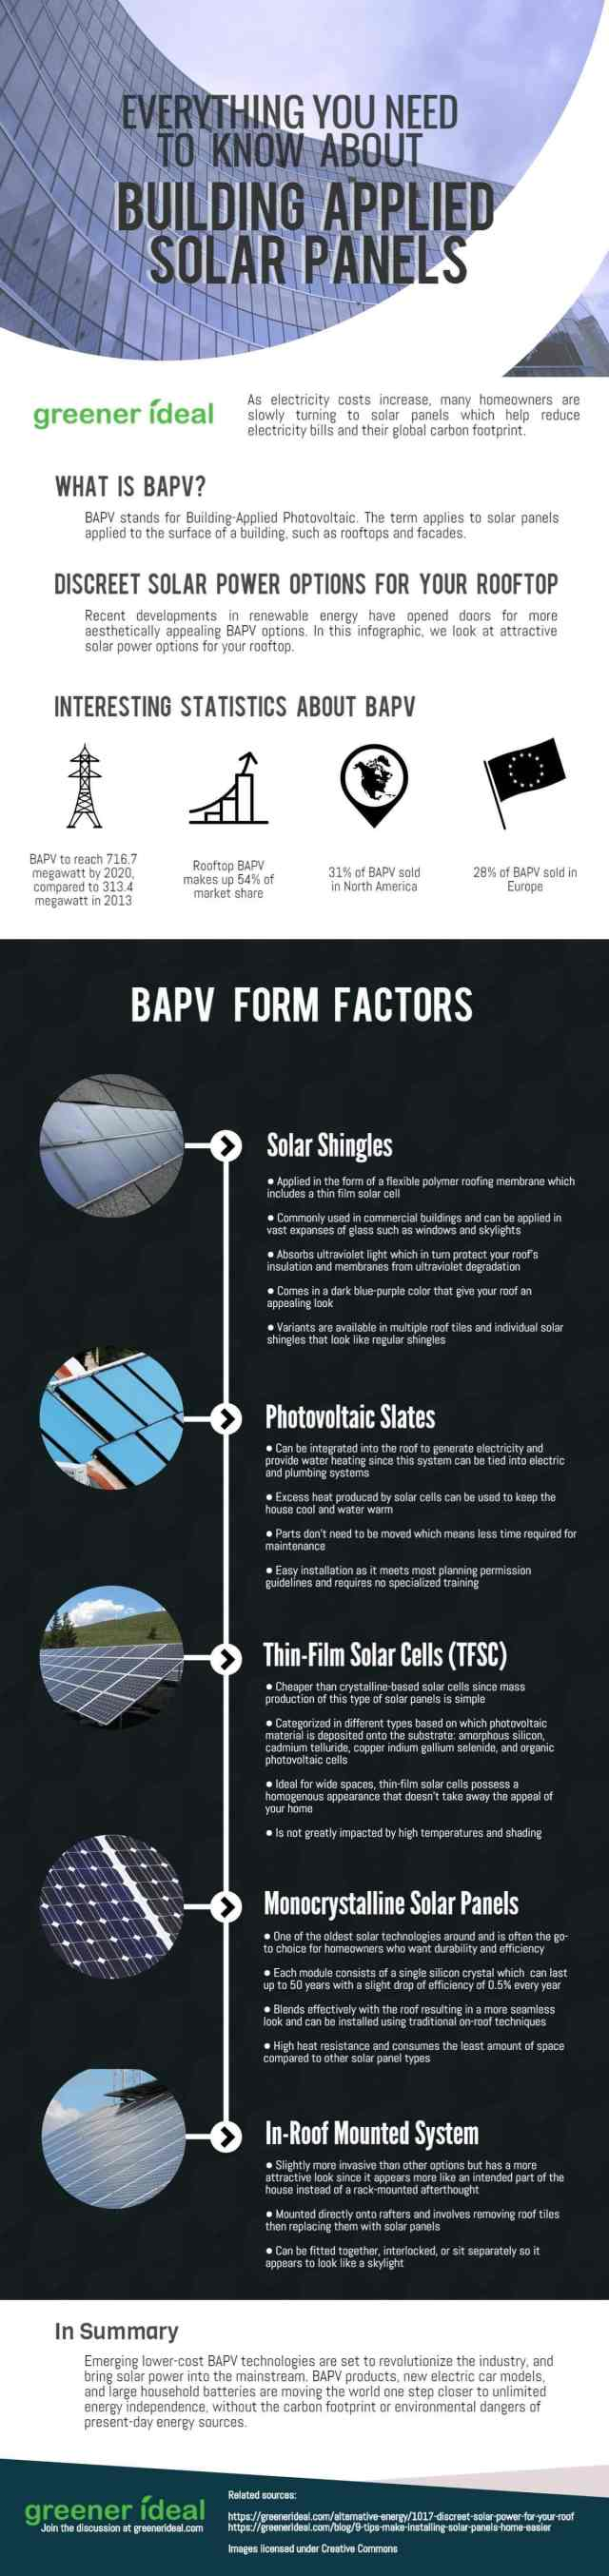 Everything-You-Need-to-Know-About-Building-Applied-Solar-Panels.jpg?resize=640,2708&ssl=1